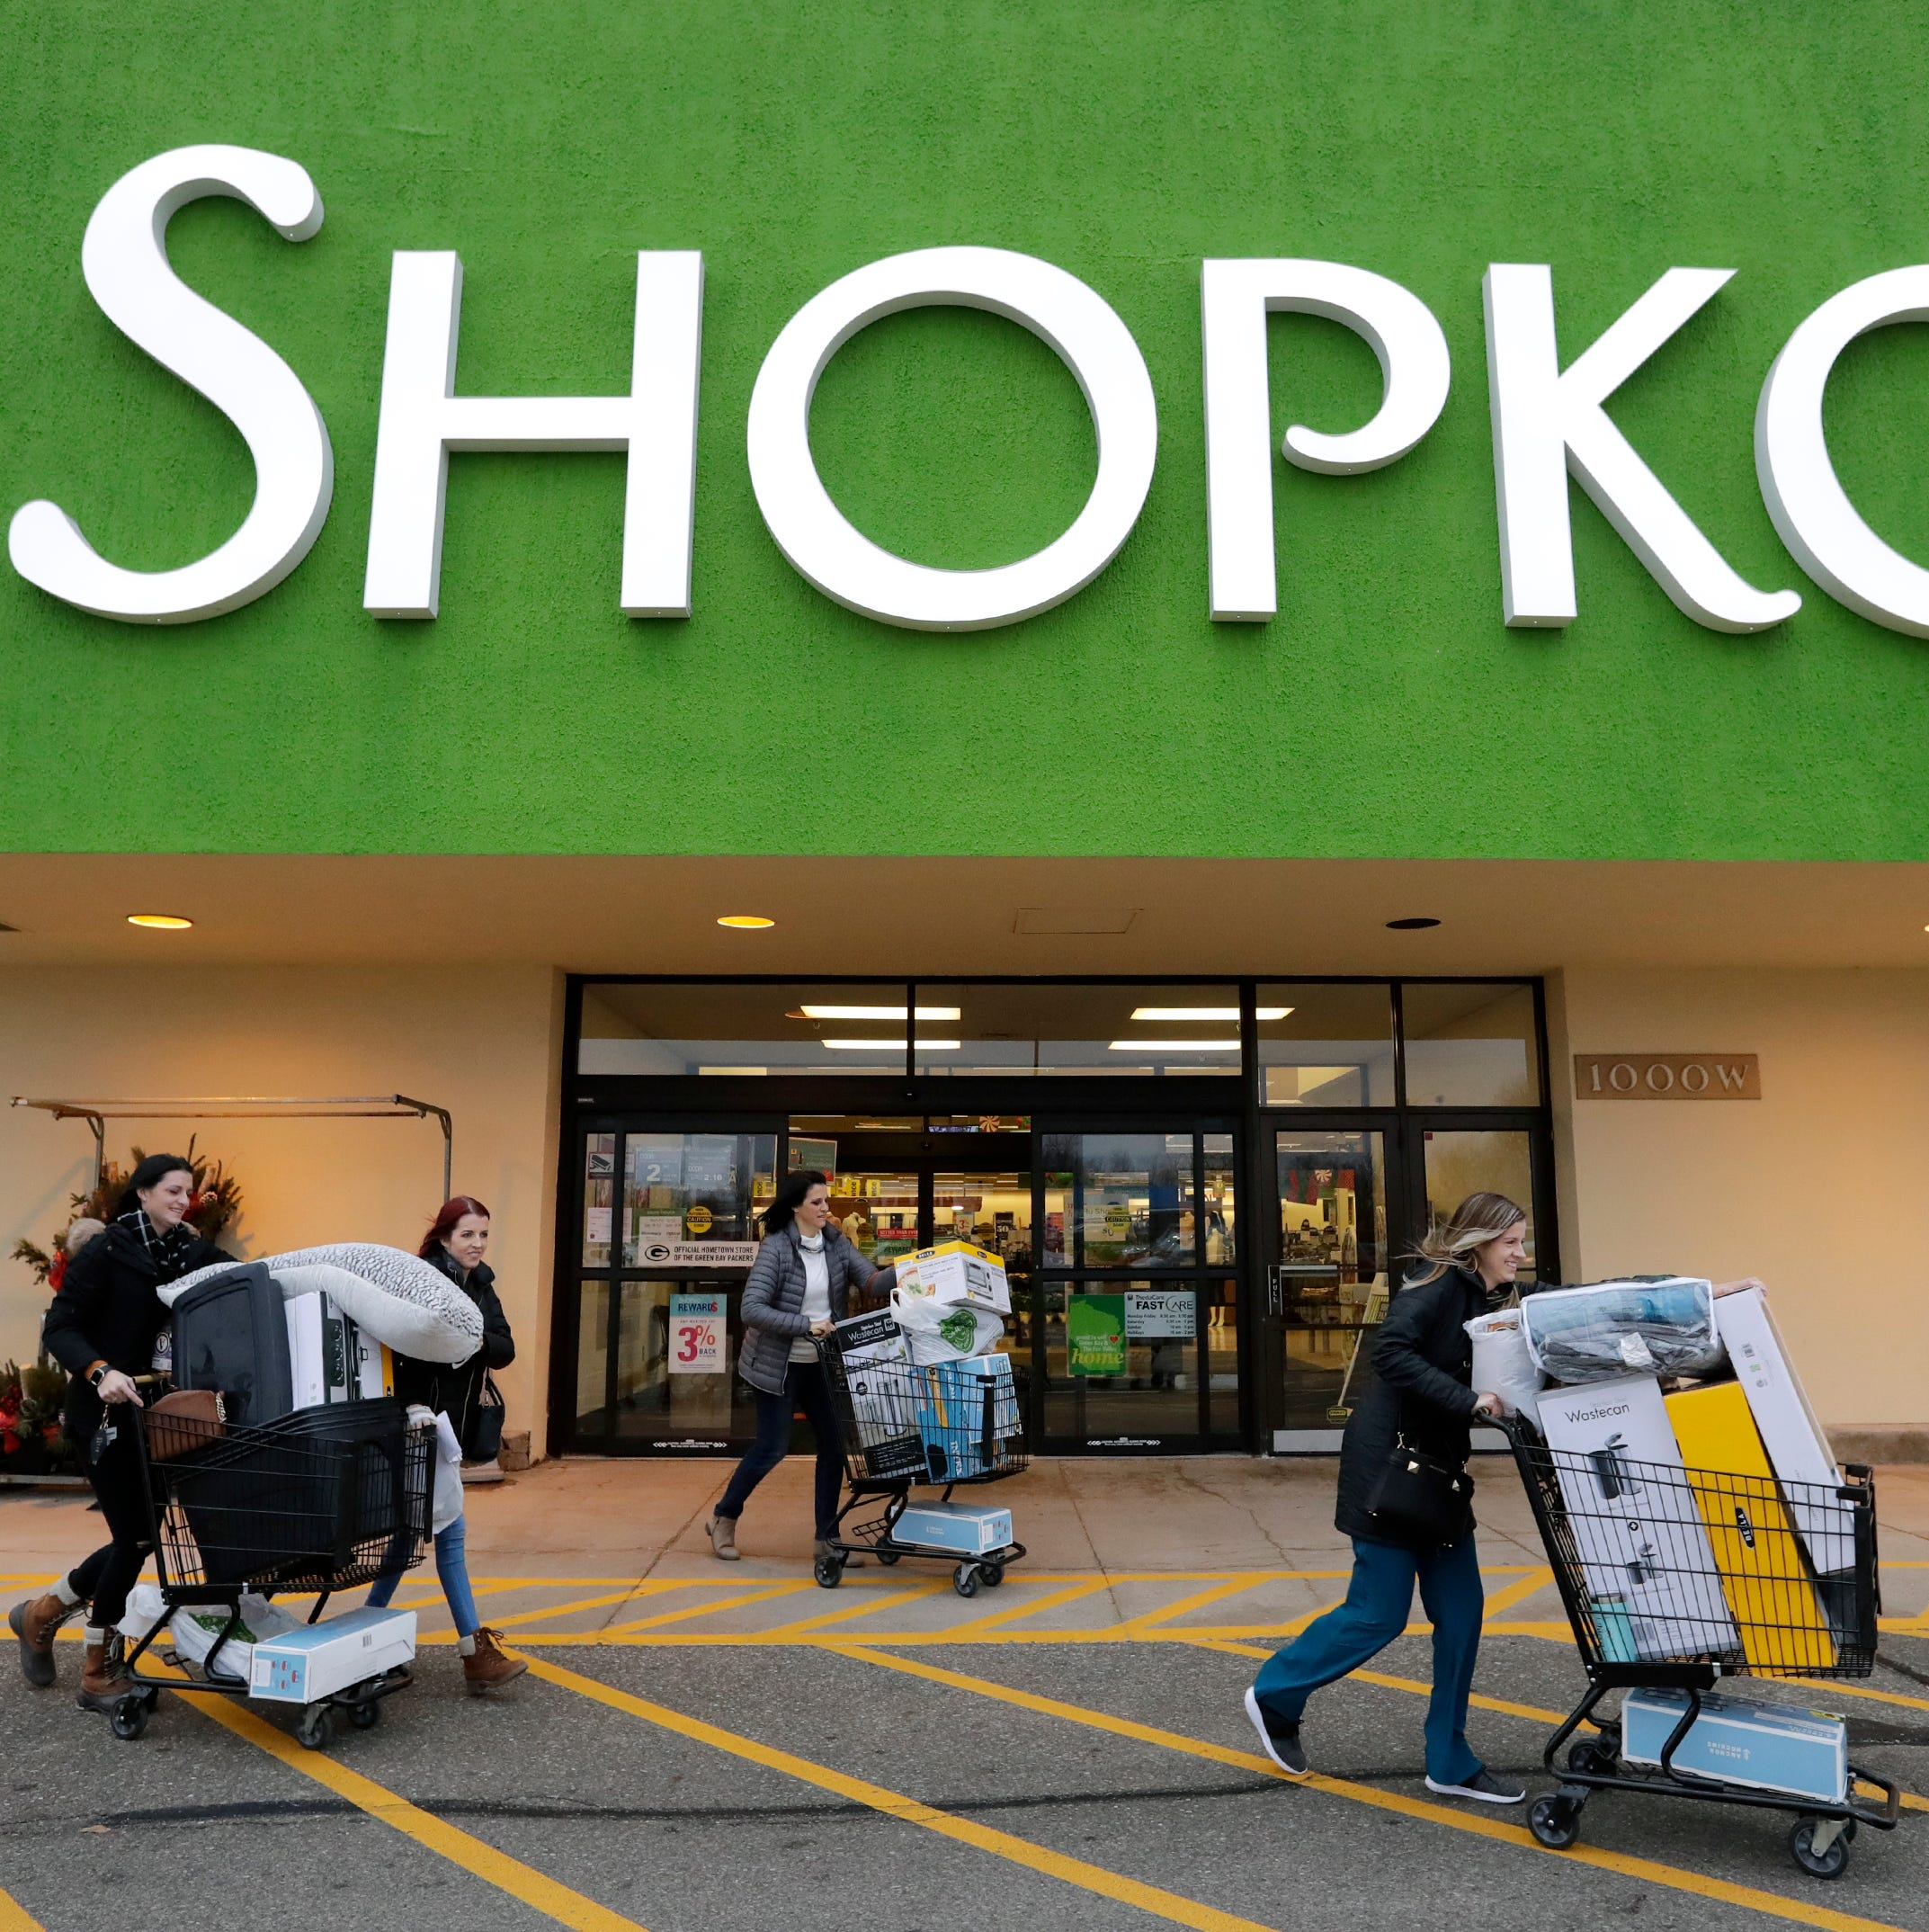 The Buzz: Shopko questions linger on services, departments